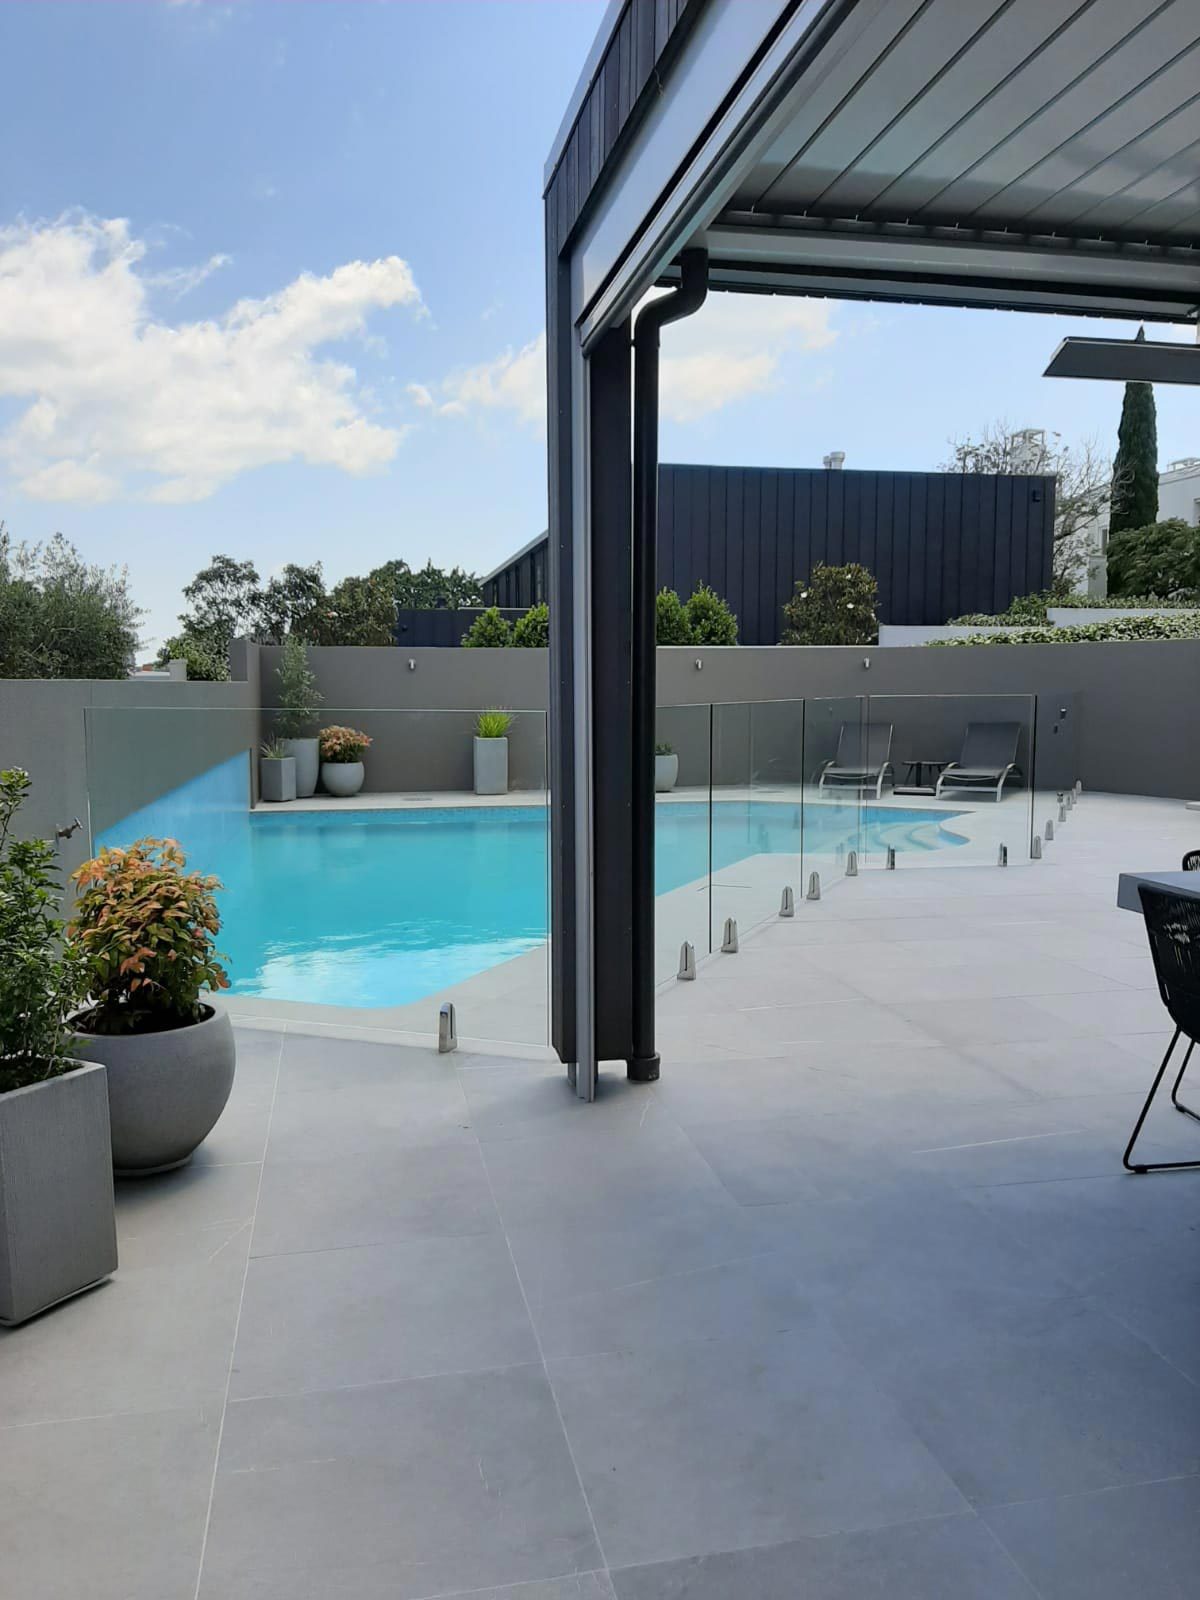 glass-pool-fences-Pool-fence-vices-01